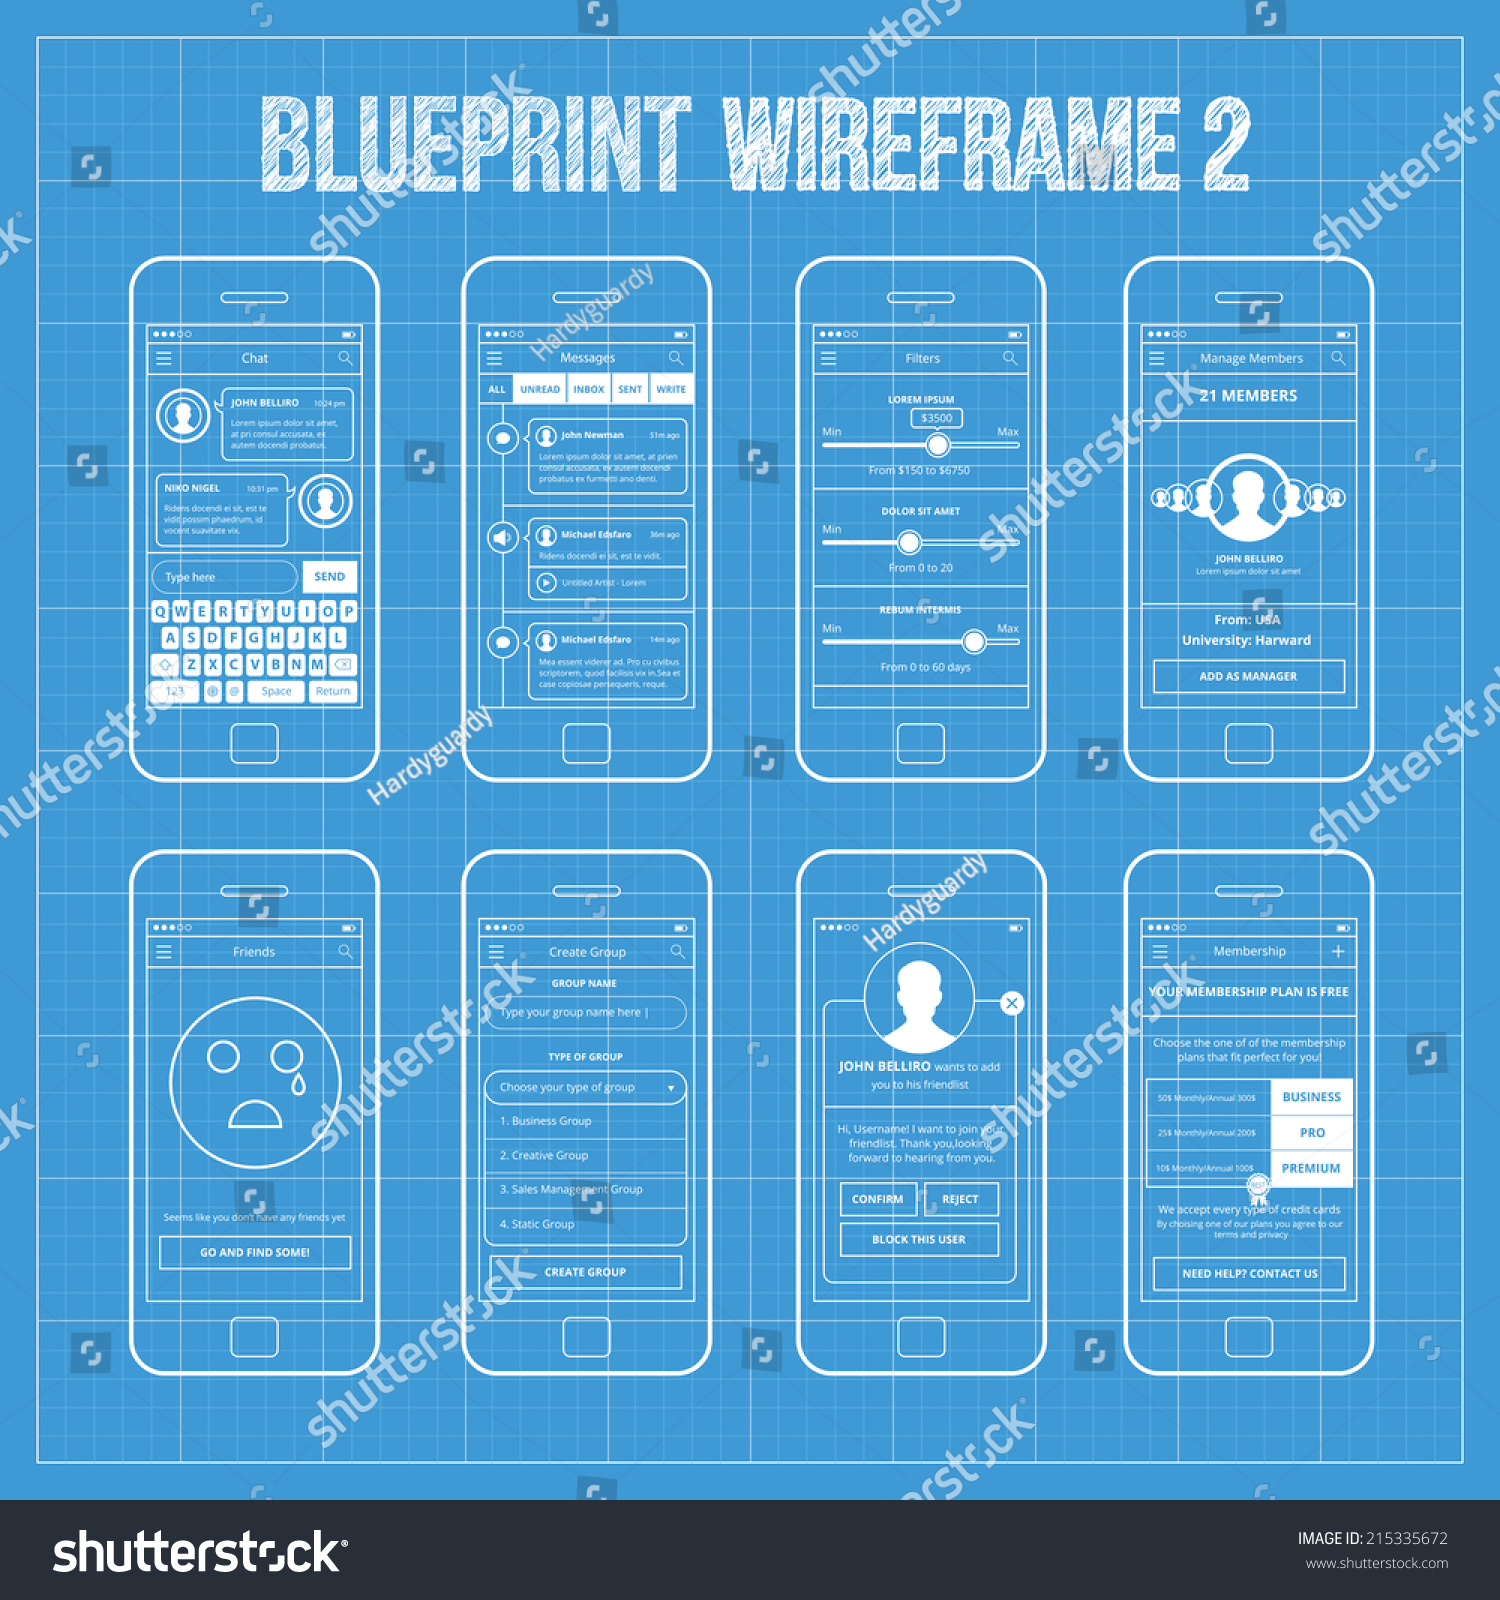 Blueprint wireframe mobile app ui kit vectores en stock 215335672 blueprint wireframe mobile app ui kit 2 chat screen messages screen filters screen malvernweather Images